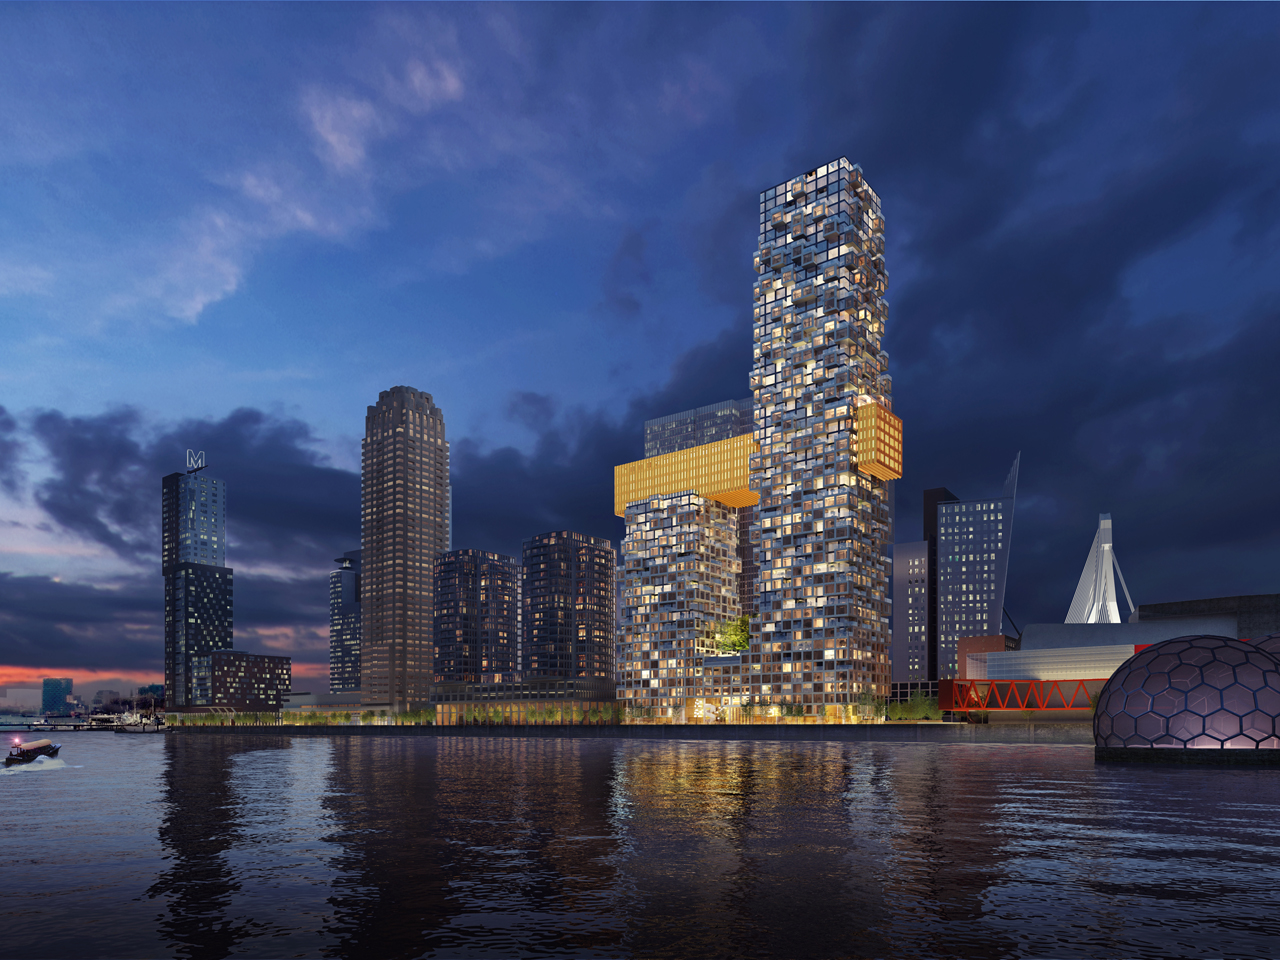 A sax-shaped tower for Rotterdam's skyline